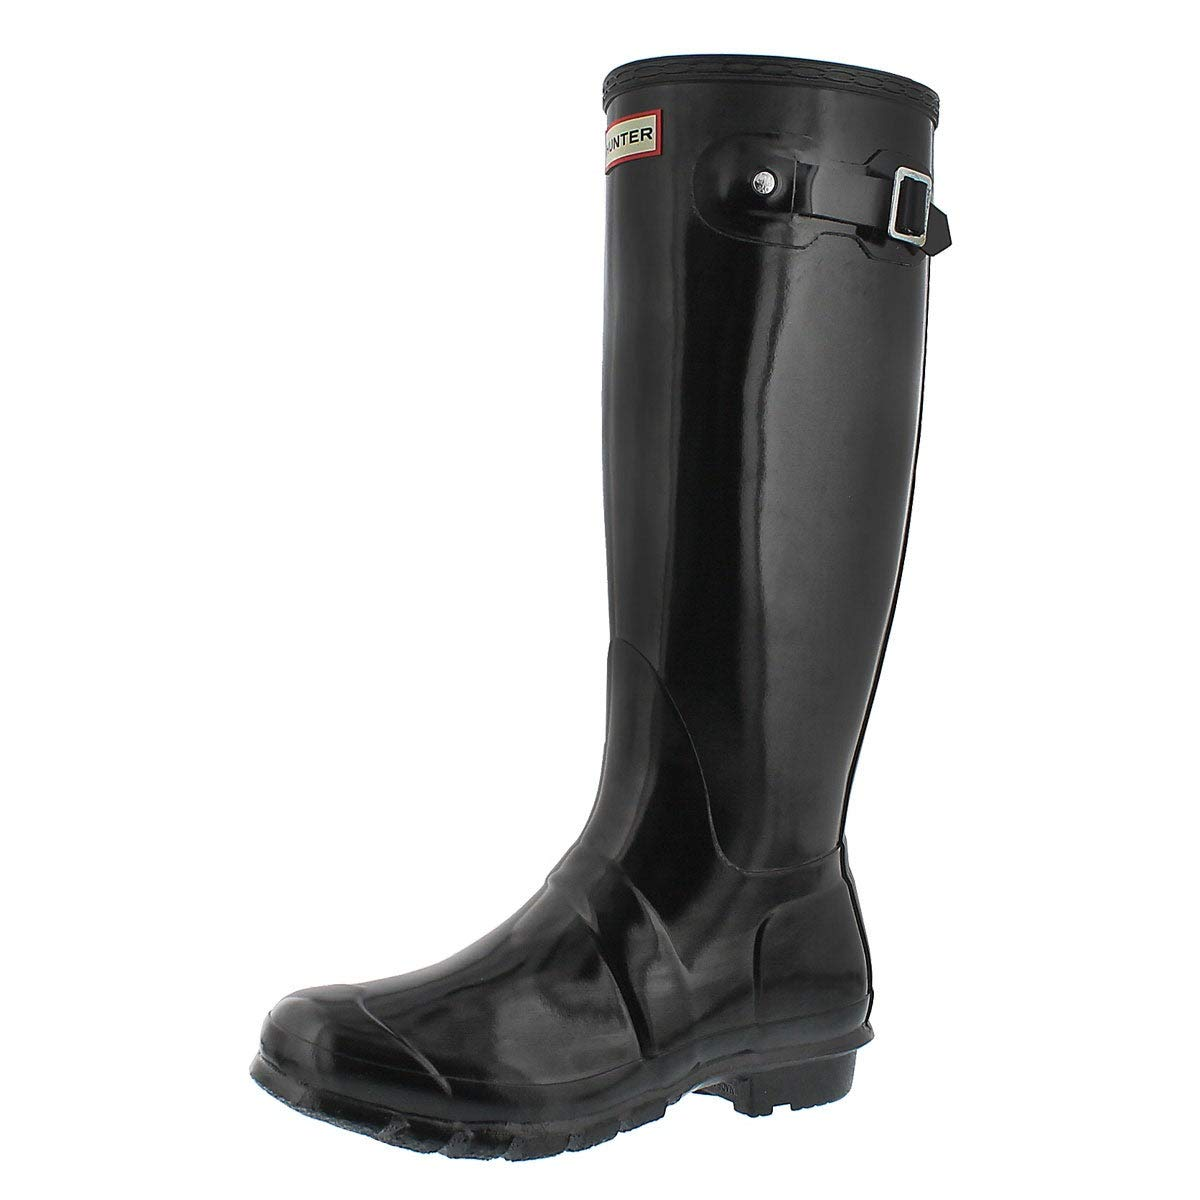 Hunter Boots Women's Original Tall Gloss Pull On Rain Boot Black 8 Medium US by Hunter